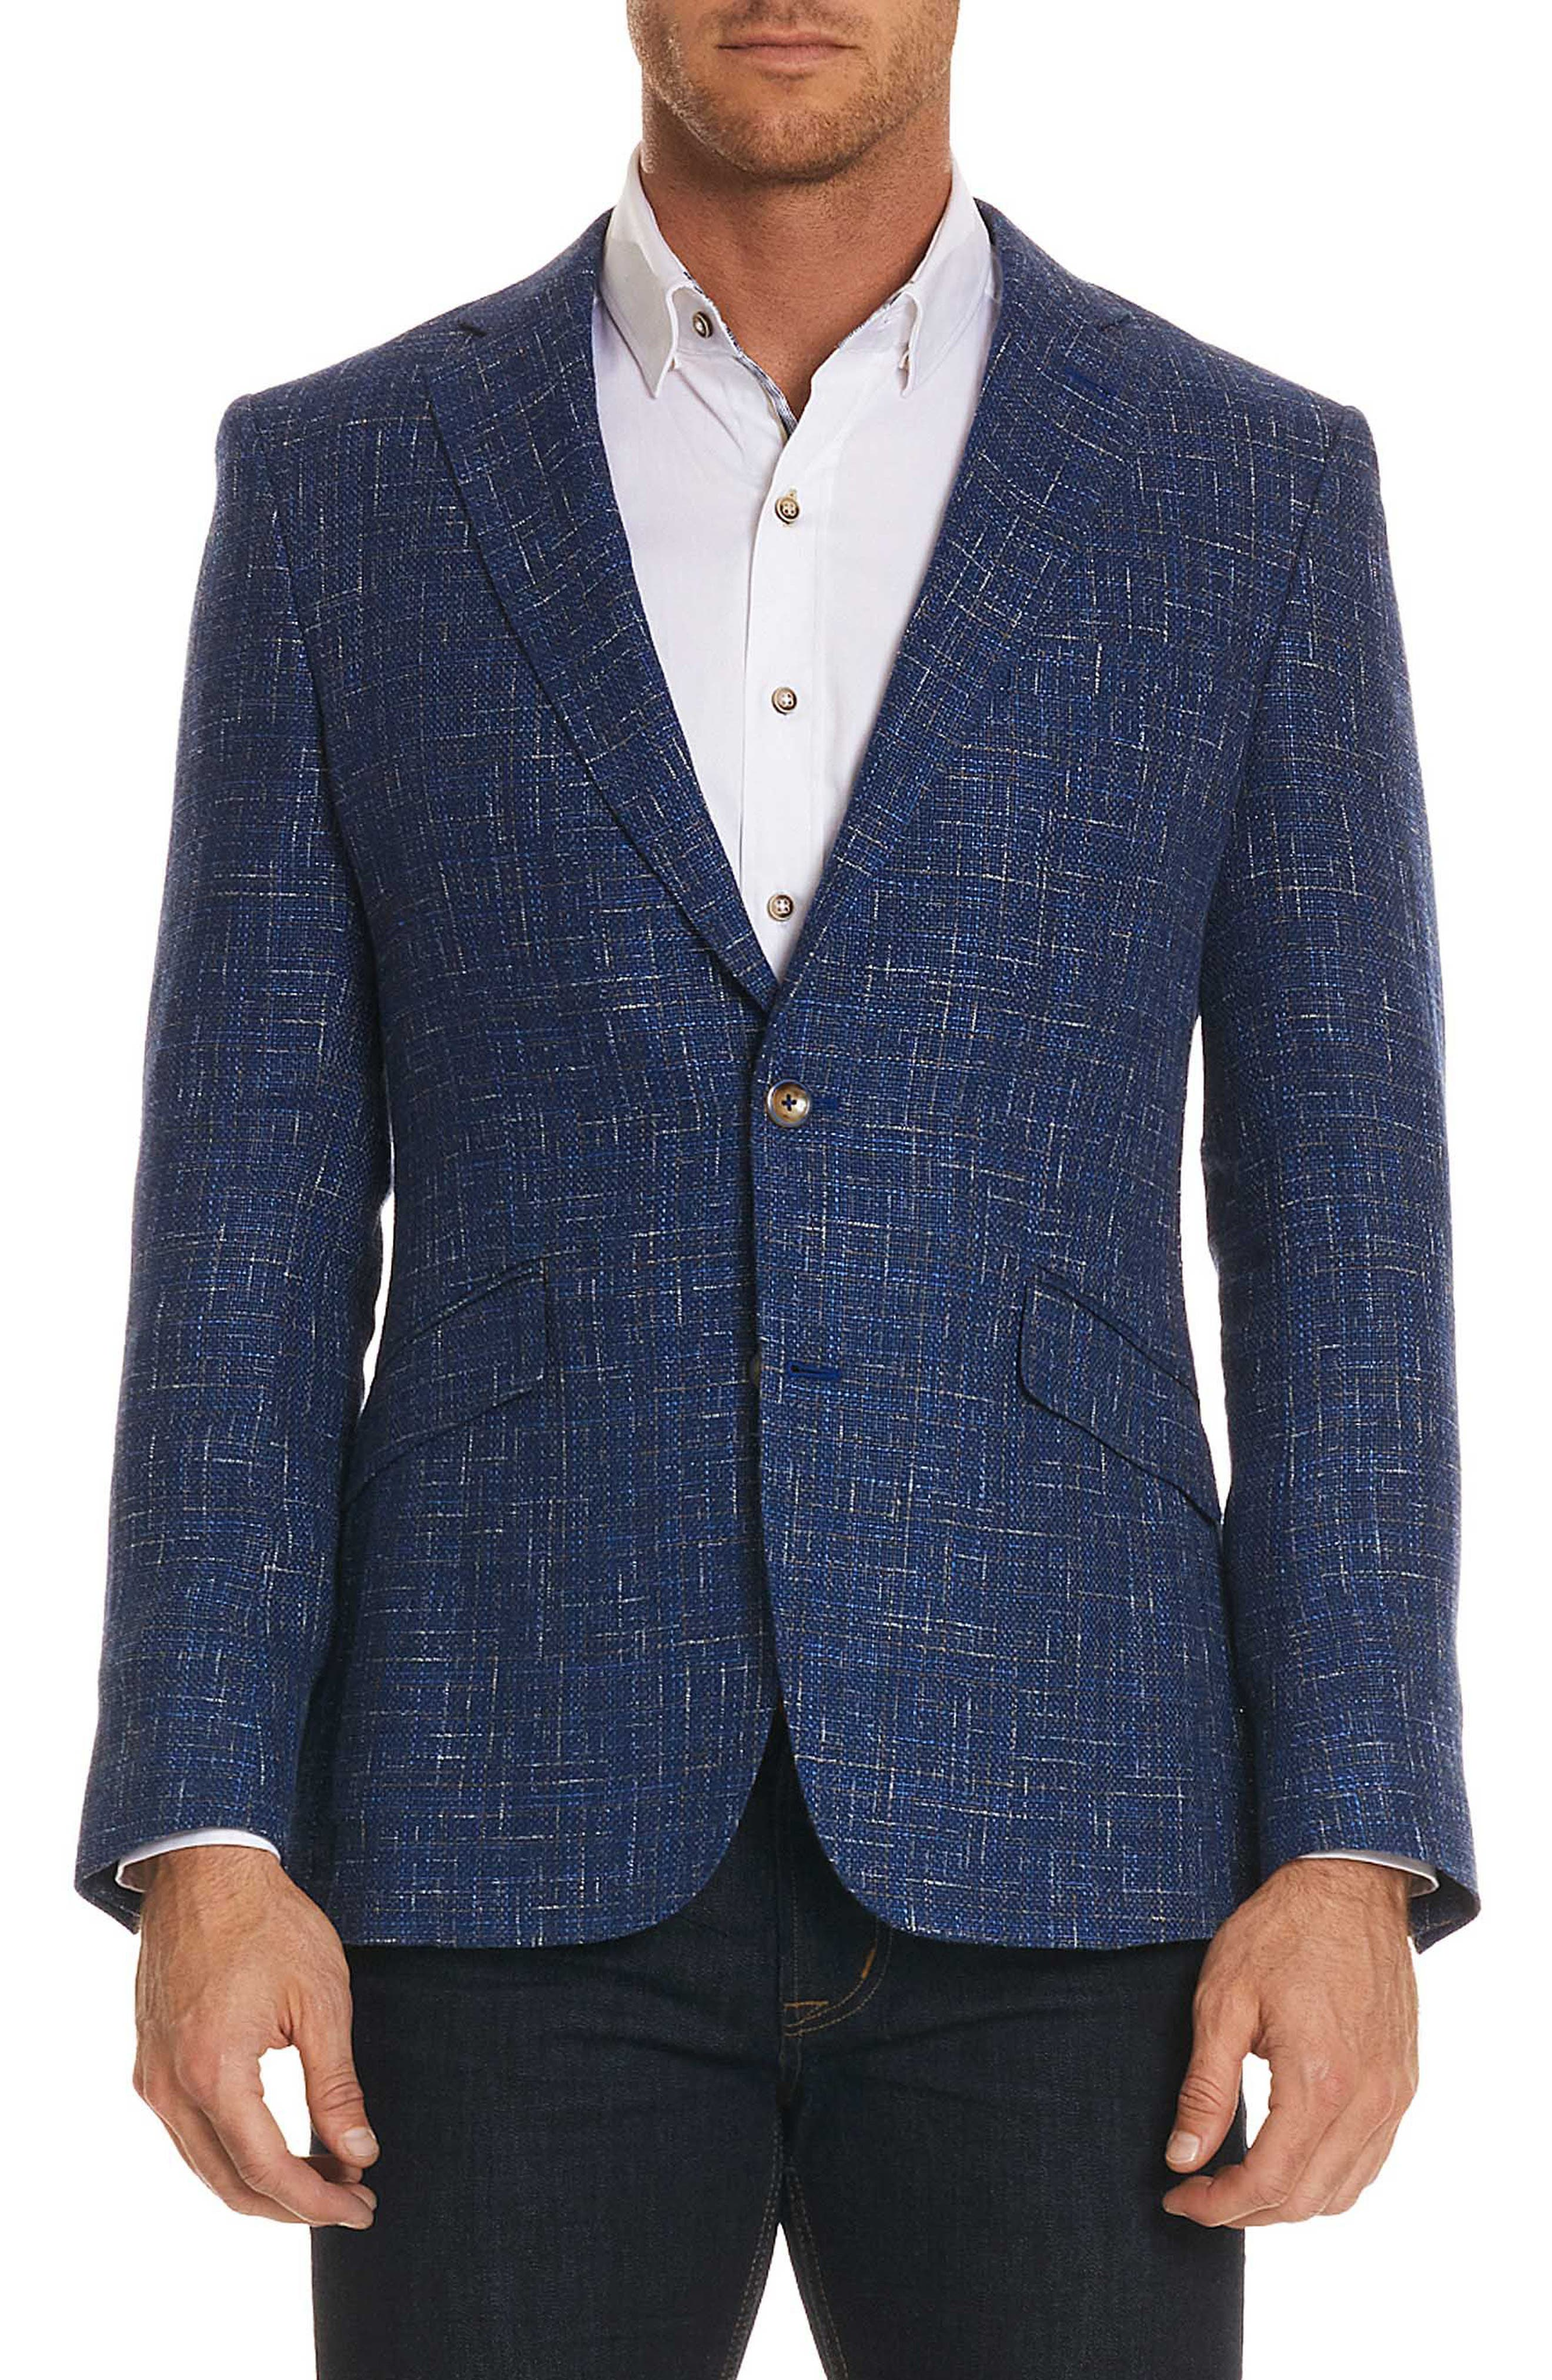 Jeremy Tailored Fit Sportcoat,                         Main,                         color, BLUE